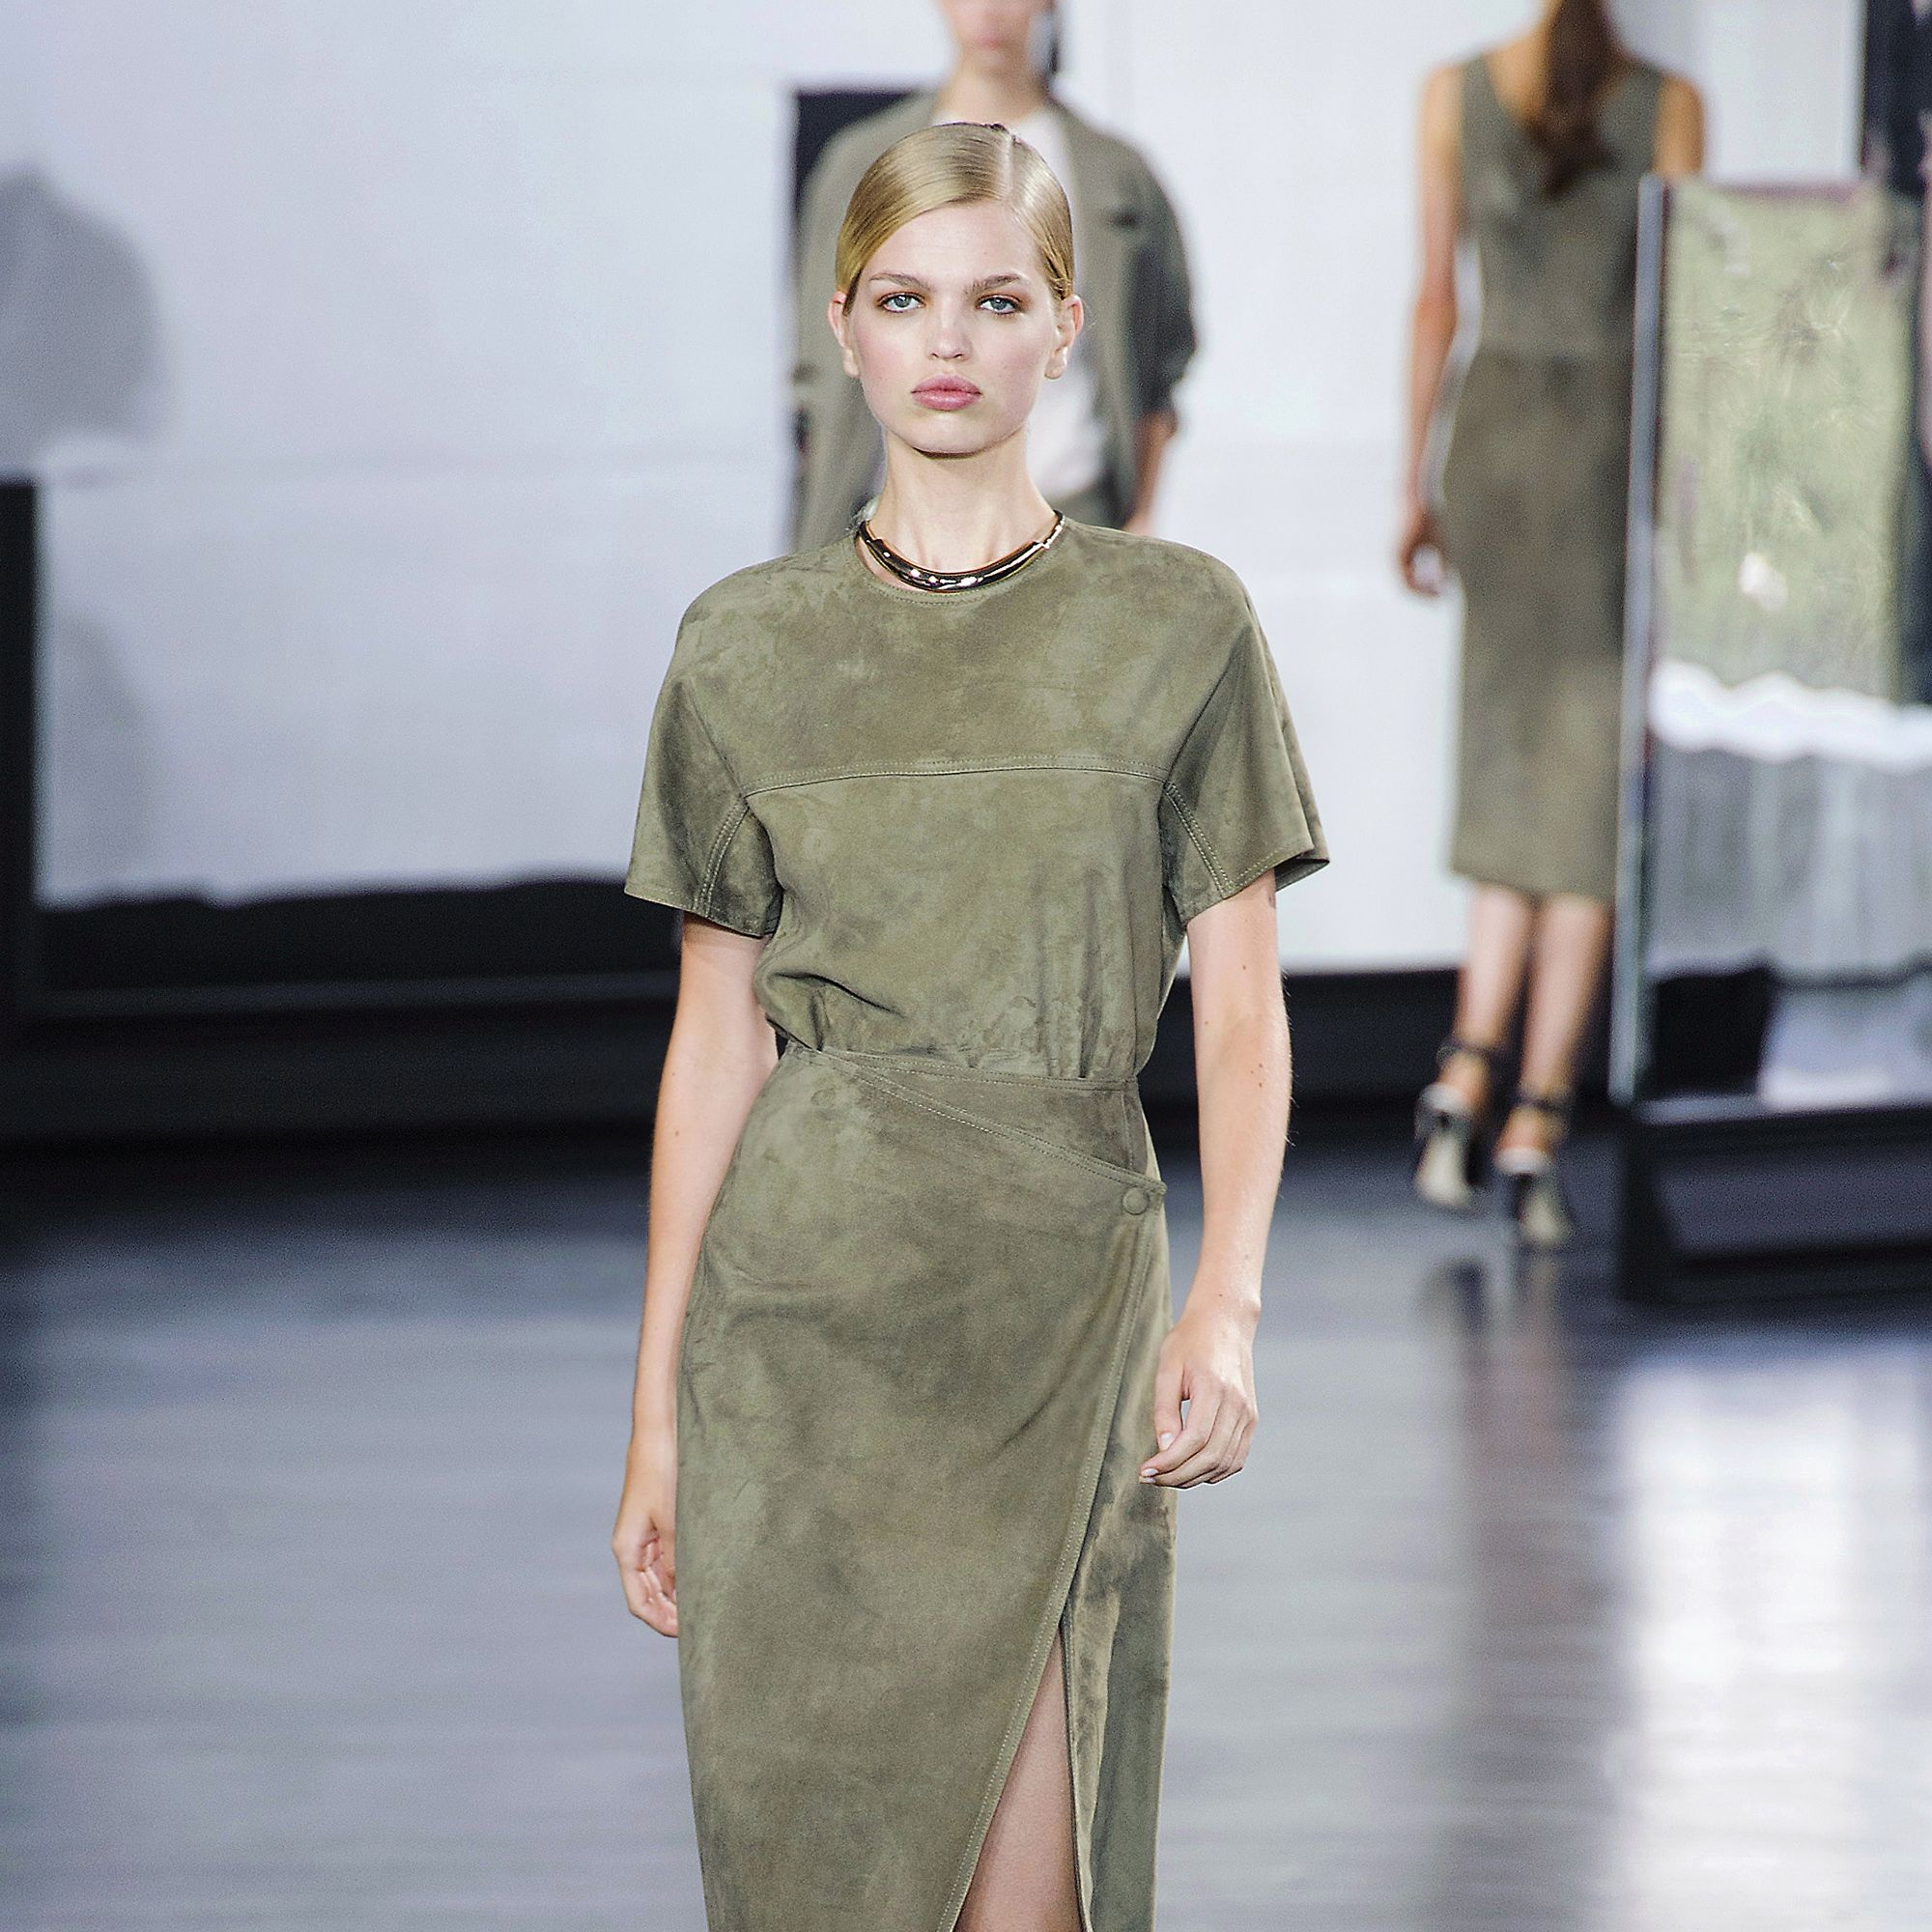 Attention! For spring, Marc Jacobs, Jason Wu (pictured left), Gucci and others are outfitting women with a modern twist on utilitarian style—with dresses in sleek satins and sumptuous suedes in shades of army green.&nbsp&#x3B;<em>Stylist Tip: Take this look into evening with a strappy shoe.&nbsp&#x3B;</em><em></em>